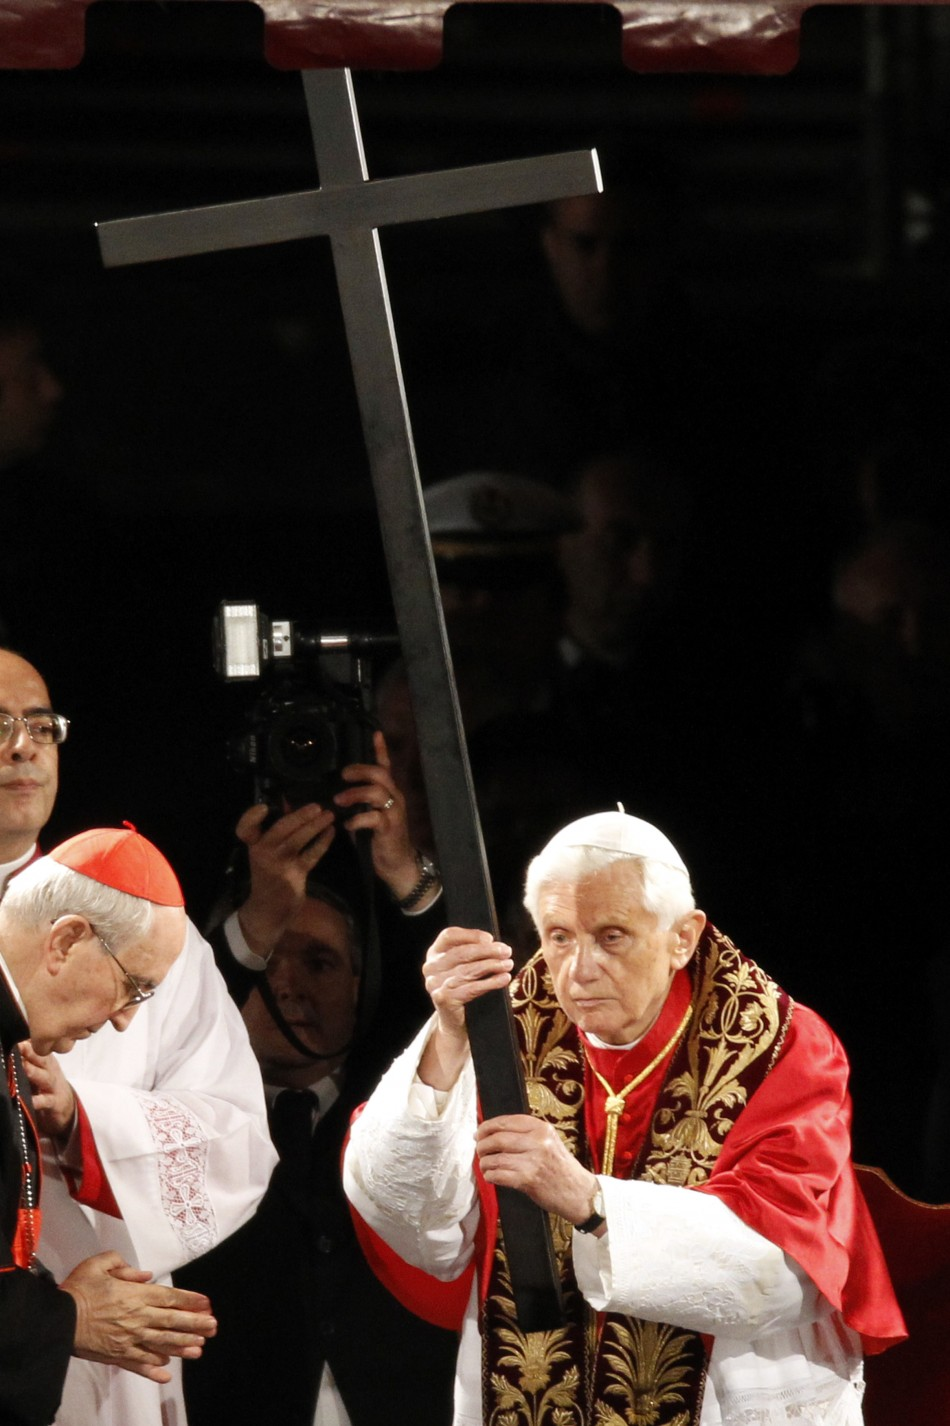 Pope Benedict XVI holds the cross as he leads the Via Crucis Way of the Cross procession at the Colosseum in downtown Rome